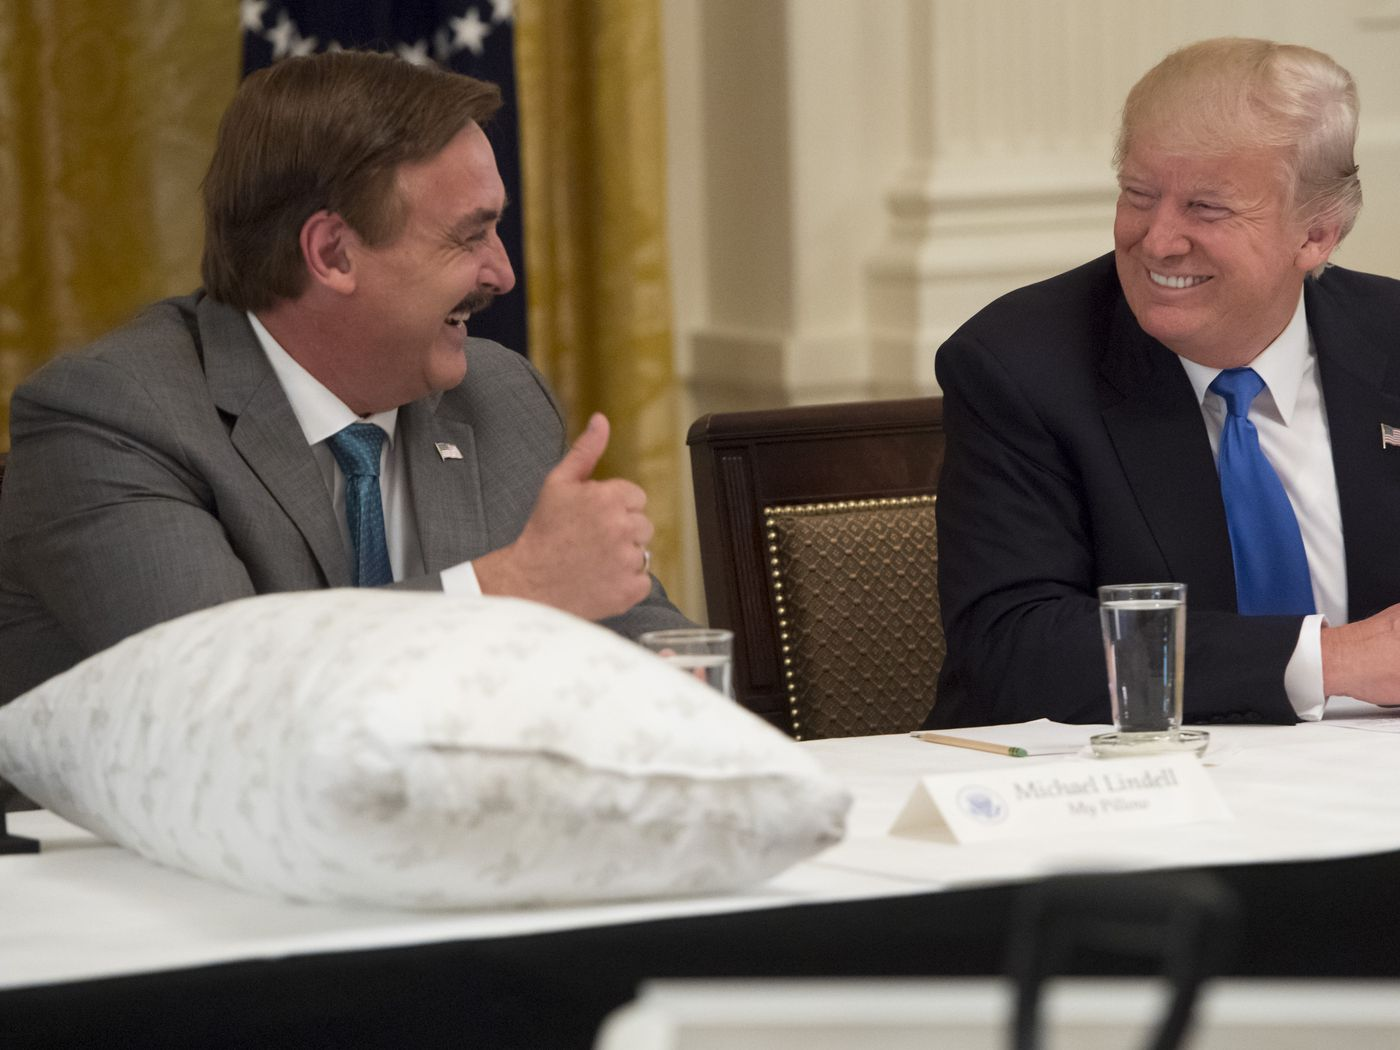 The MyPillow guy and oleandrin, an unproven, potentially toxic Covid-19  treatment, explained - Vox